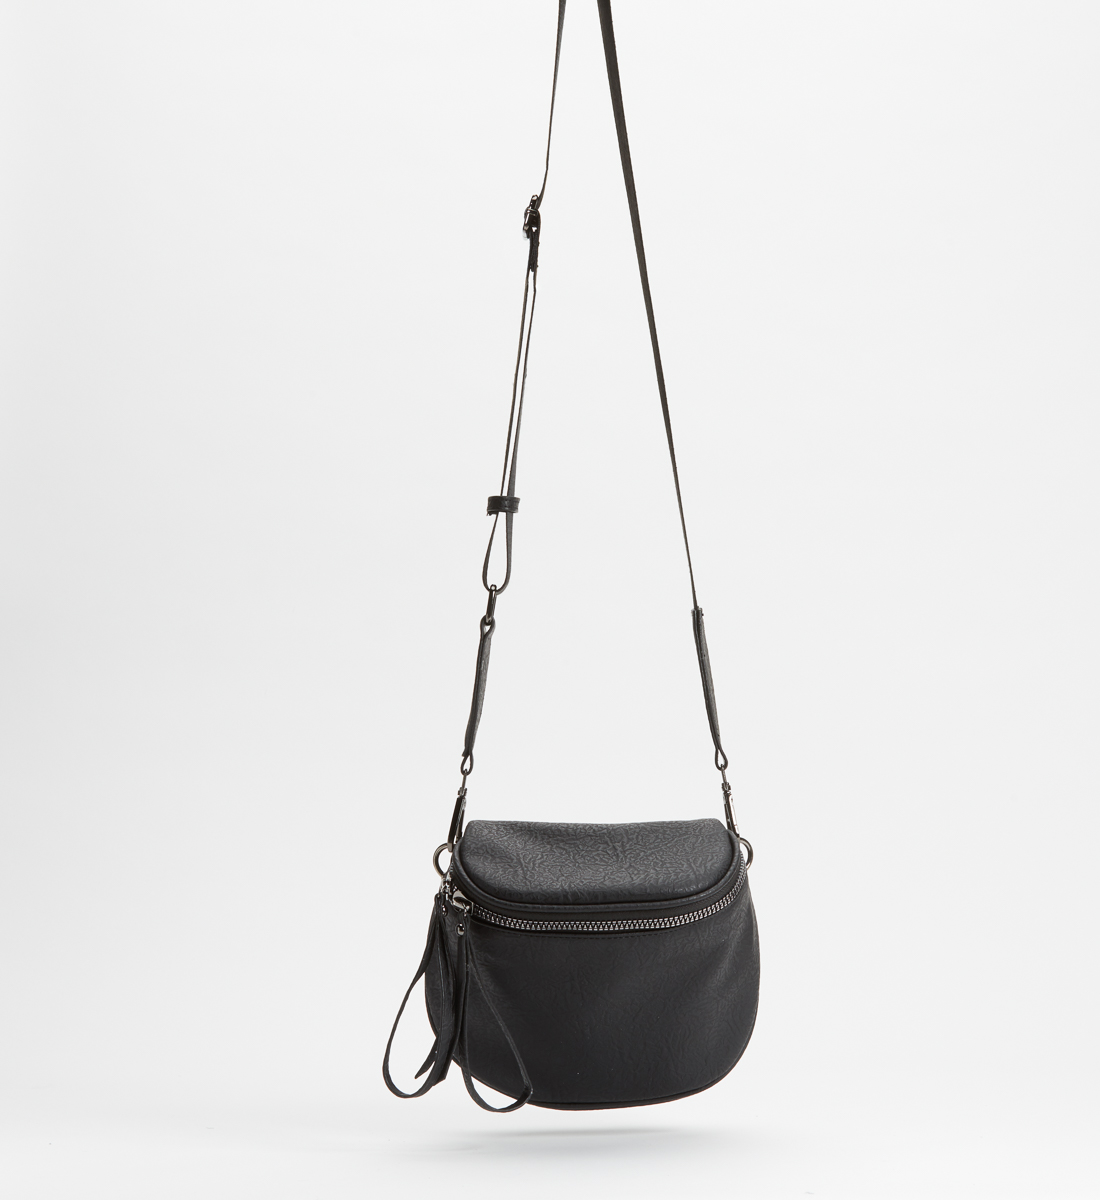 Zip Saddle Bag,Black Front